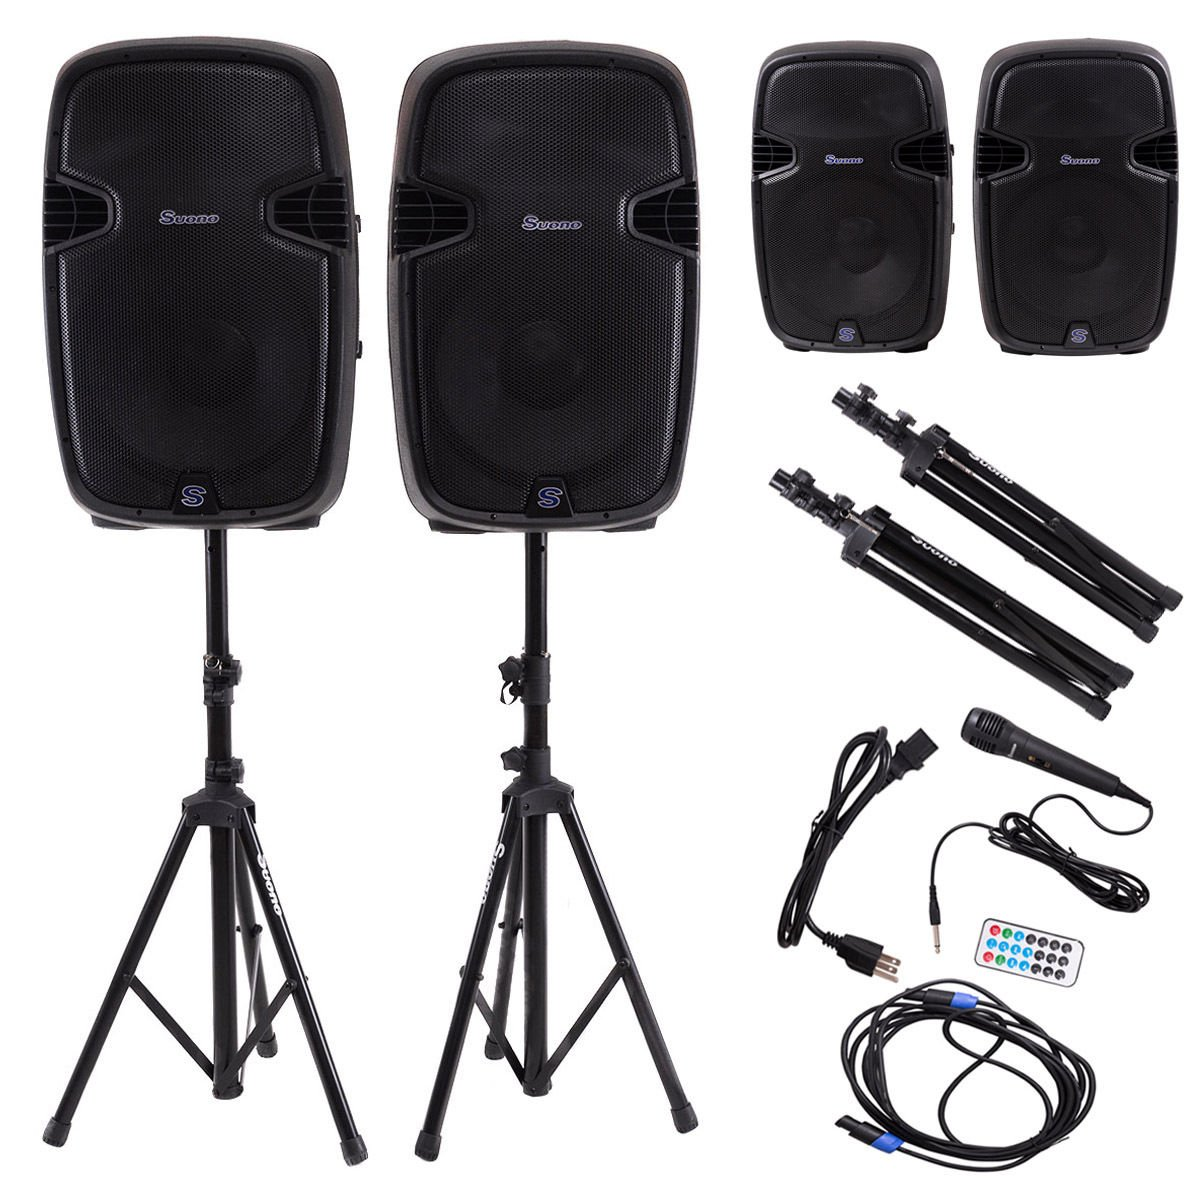 Costway 15-Inch 3000W 2-way Powered Speakers w/ Bluetooth, Mic, Speaker Stands and Control